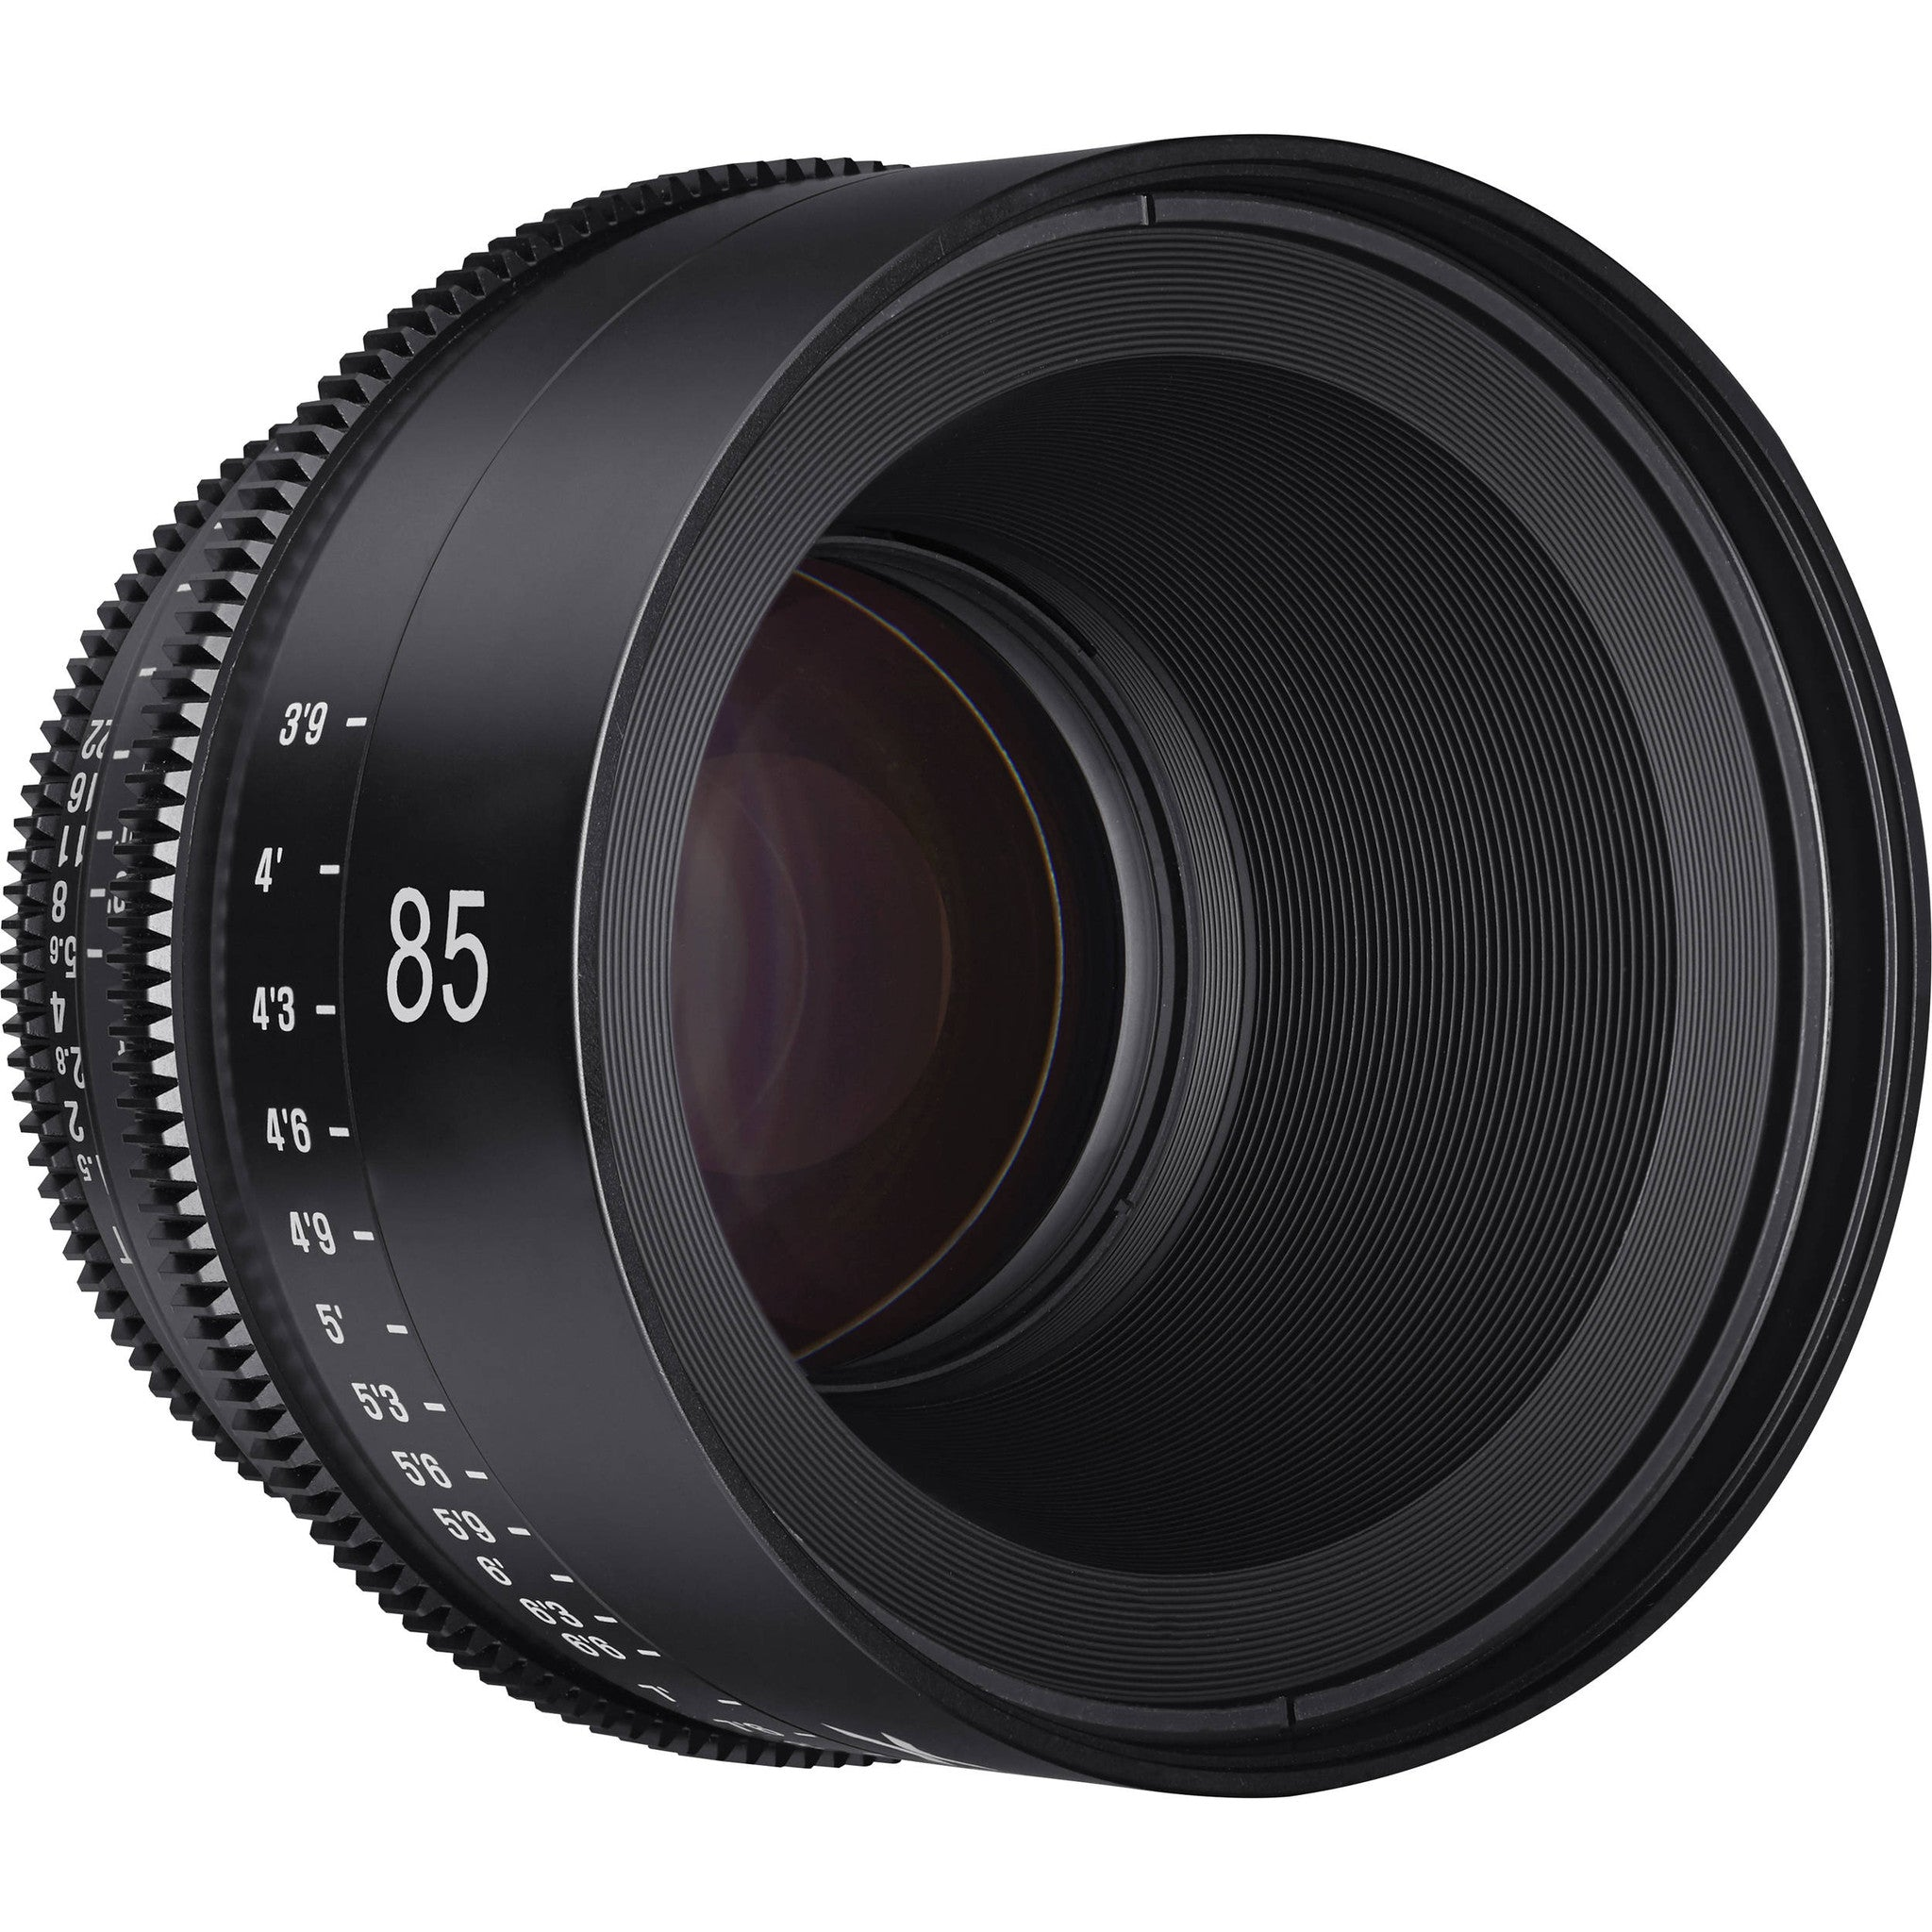 Rokinon Xeen 85mm T1.5 Lens for Micro Four Thirds Mount